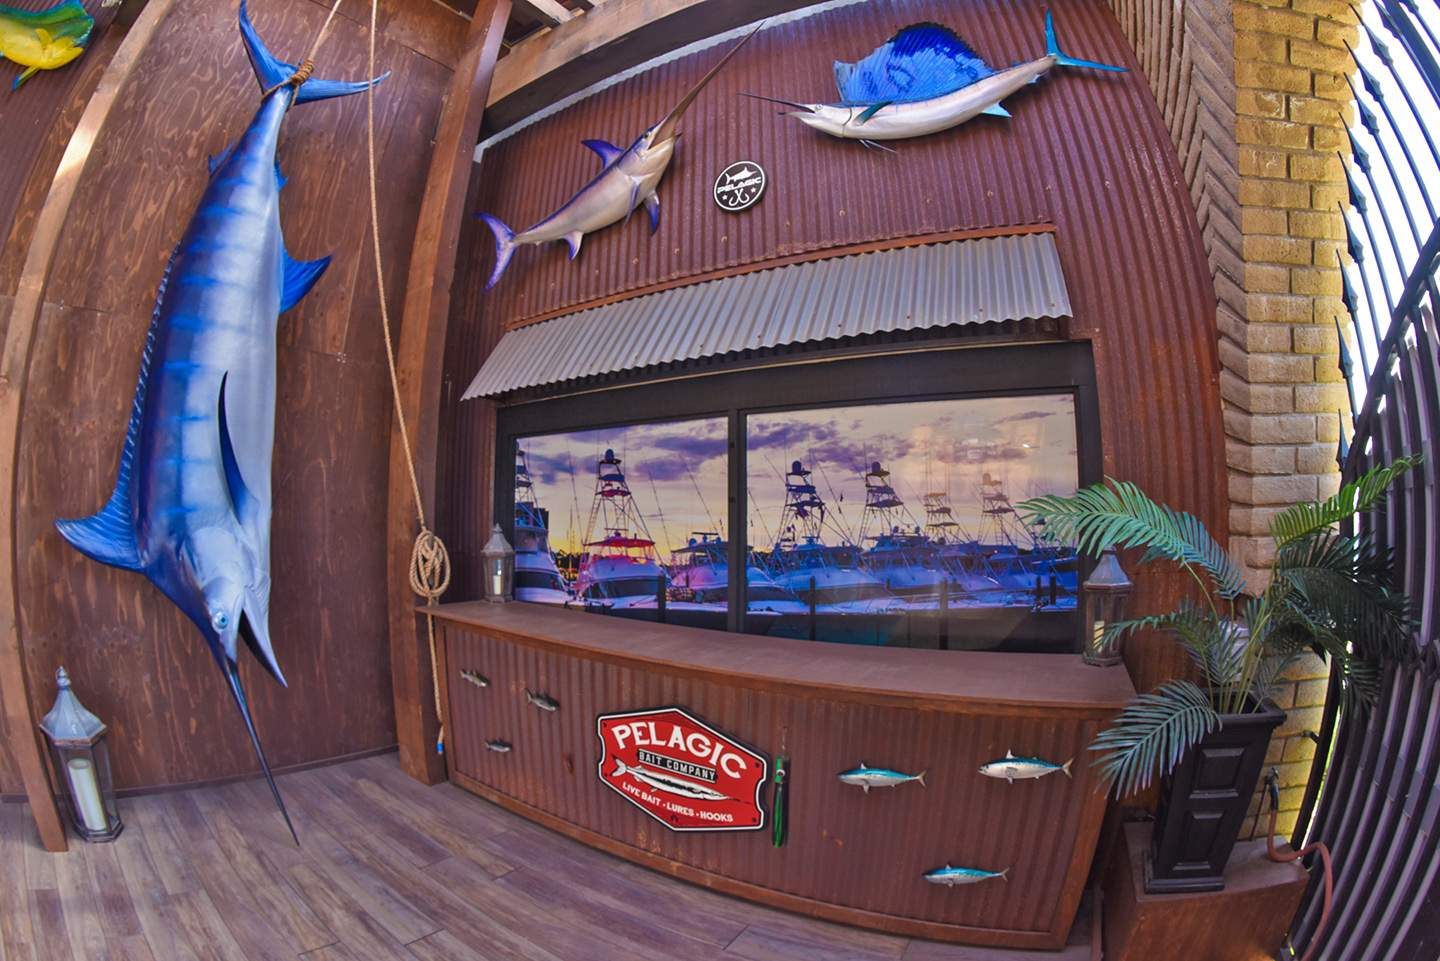 Pelagic California Retail Flagship Store 17